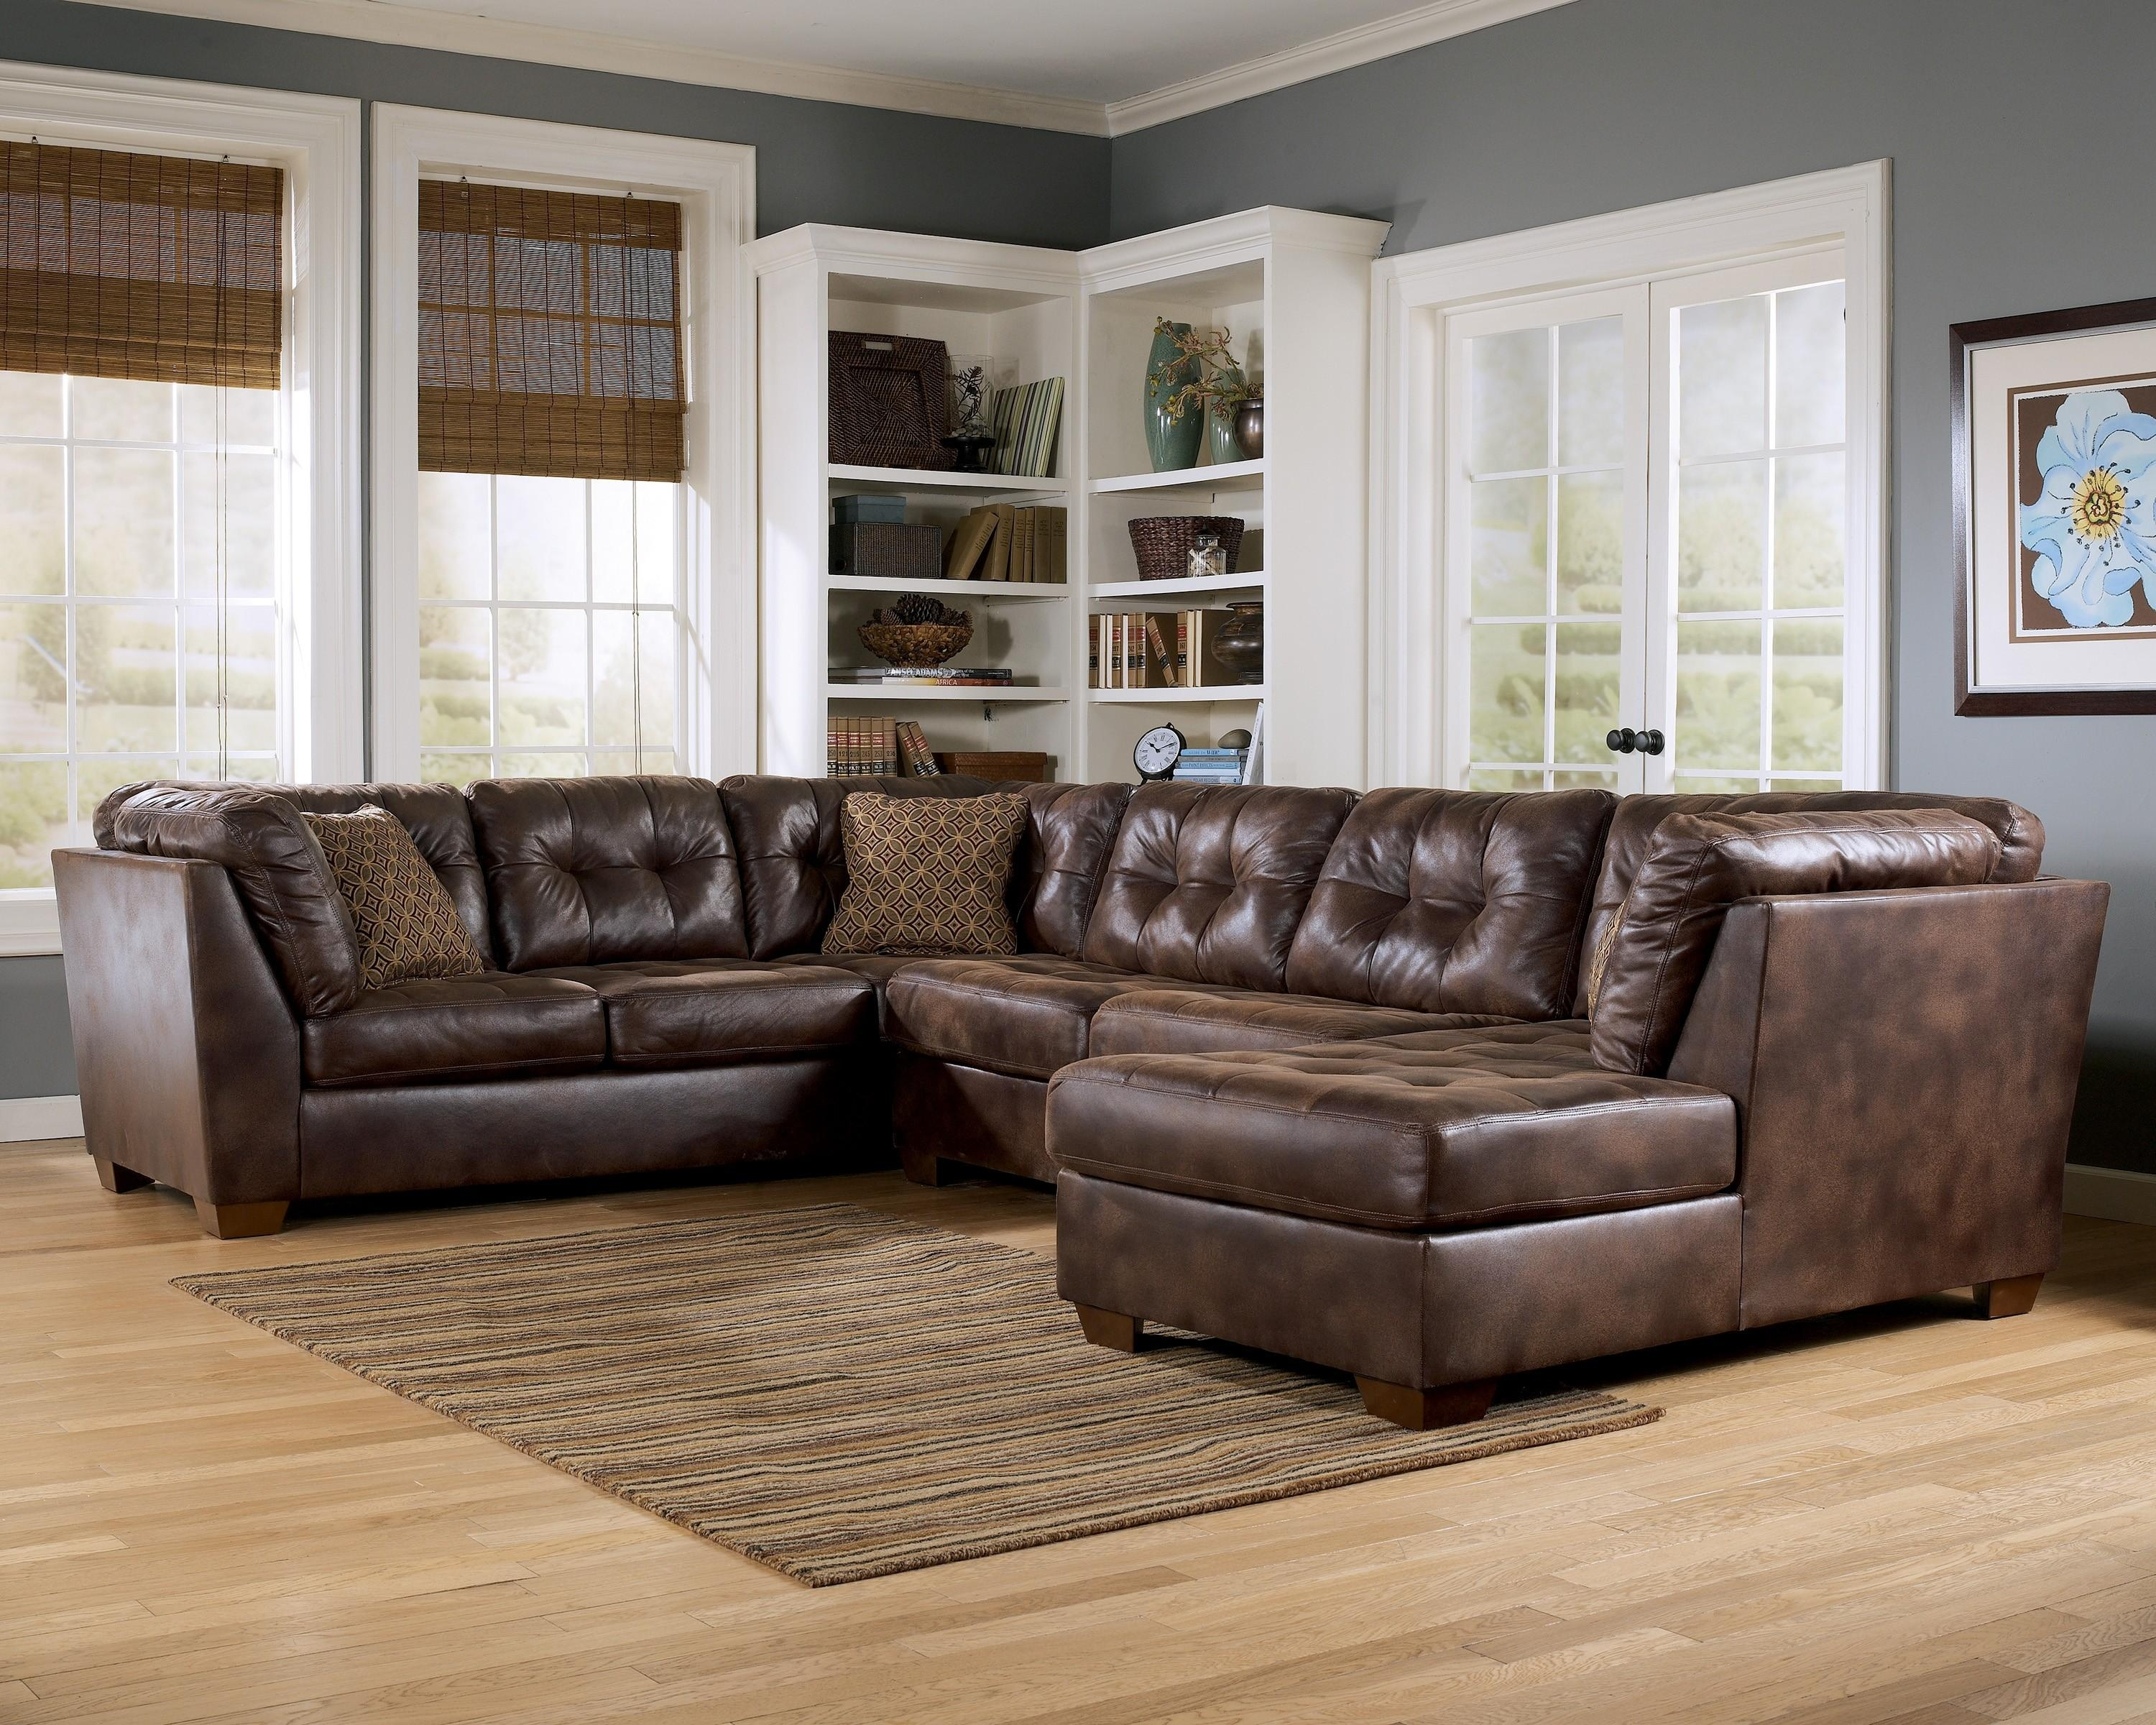 Sofas Center : Sectional Sofasth Recliners And Cup Holders Stephen Pertaining To Giant Sofas (View 18 of 20)